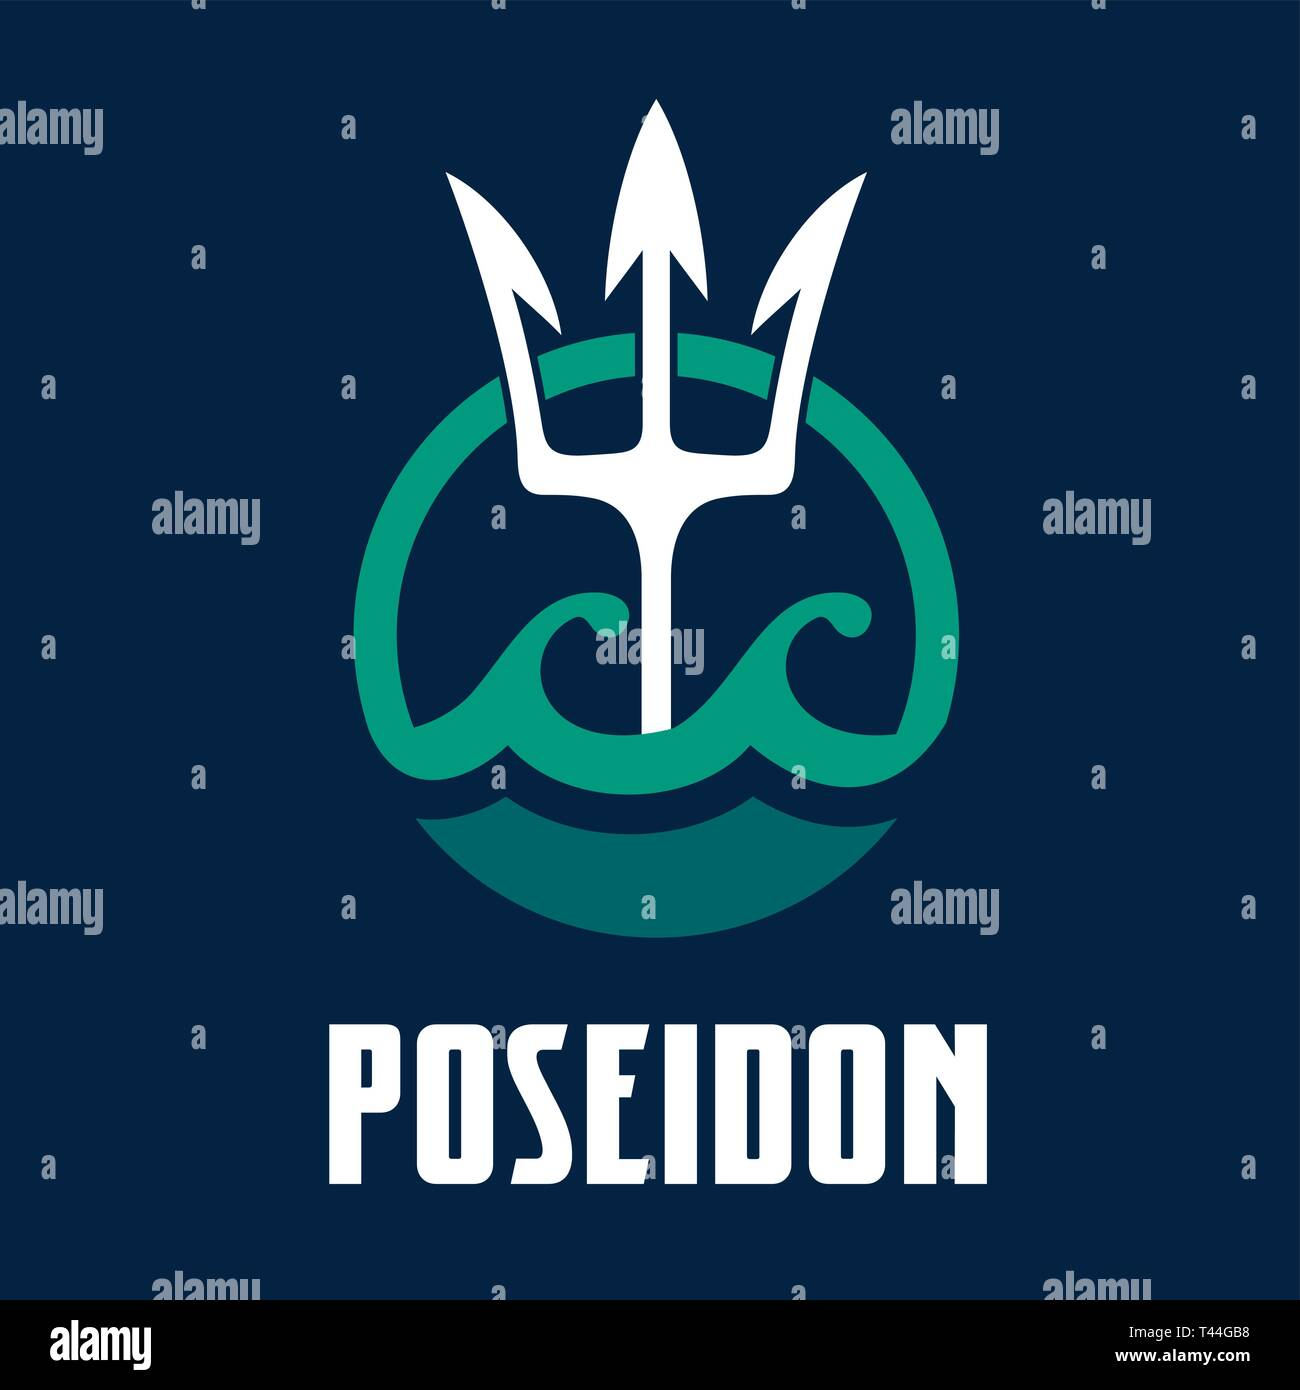 Poseidon Icon Vector Vectors Stock Photos Poseidon Icon